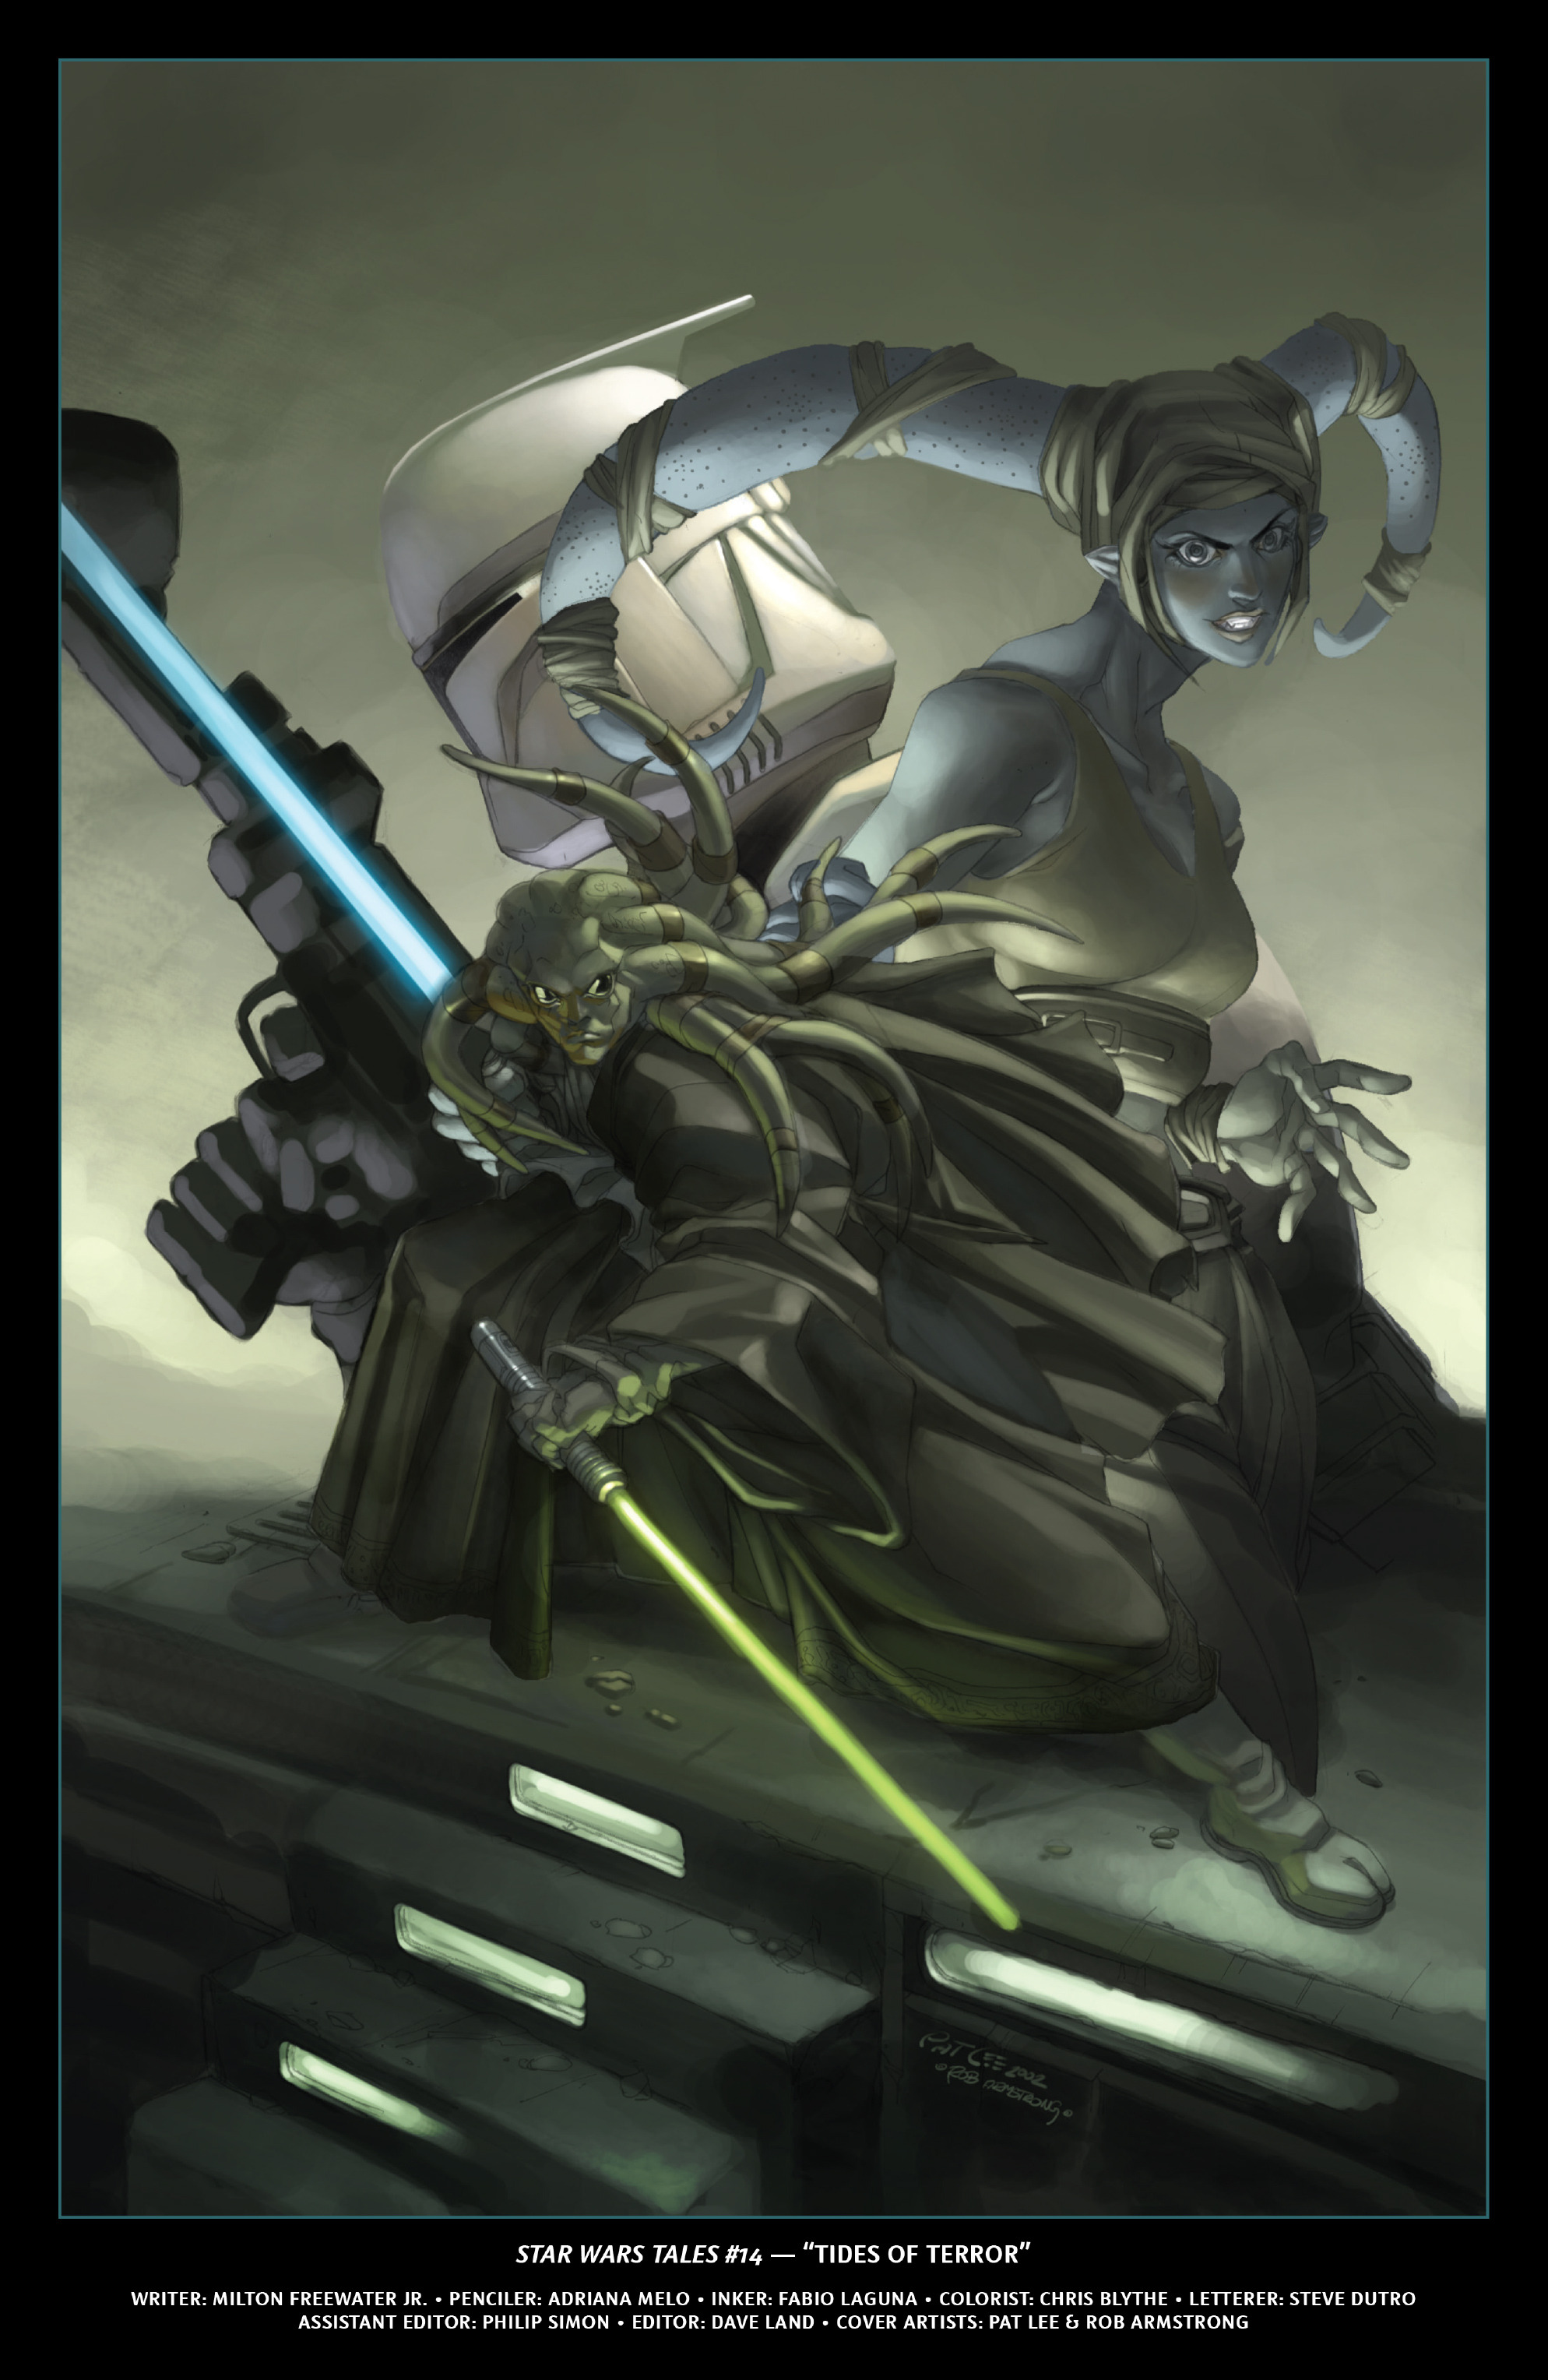 Star Wars Legends Epic Collection: The Clone Wars chap 1 pic 30